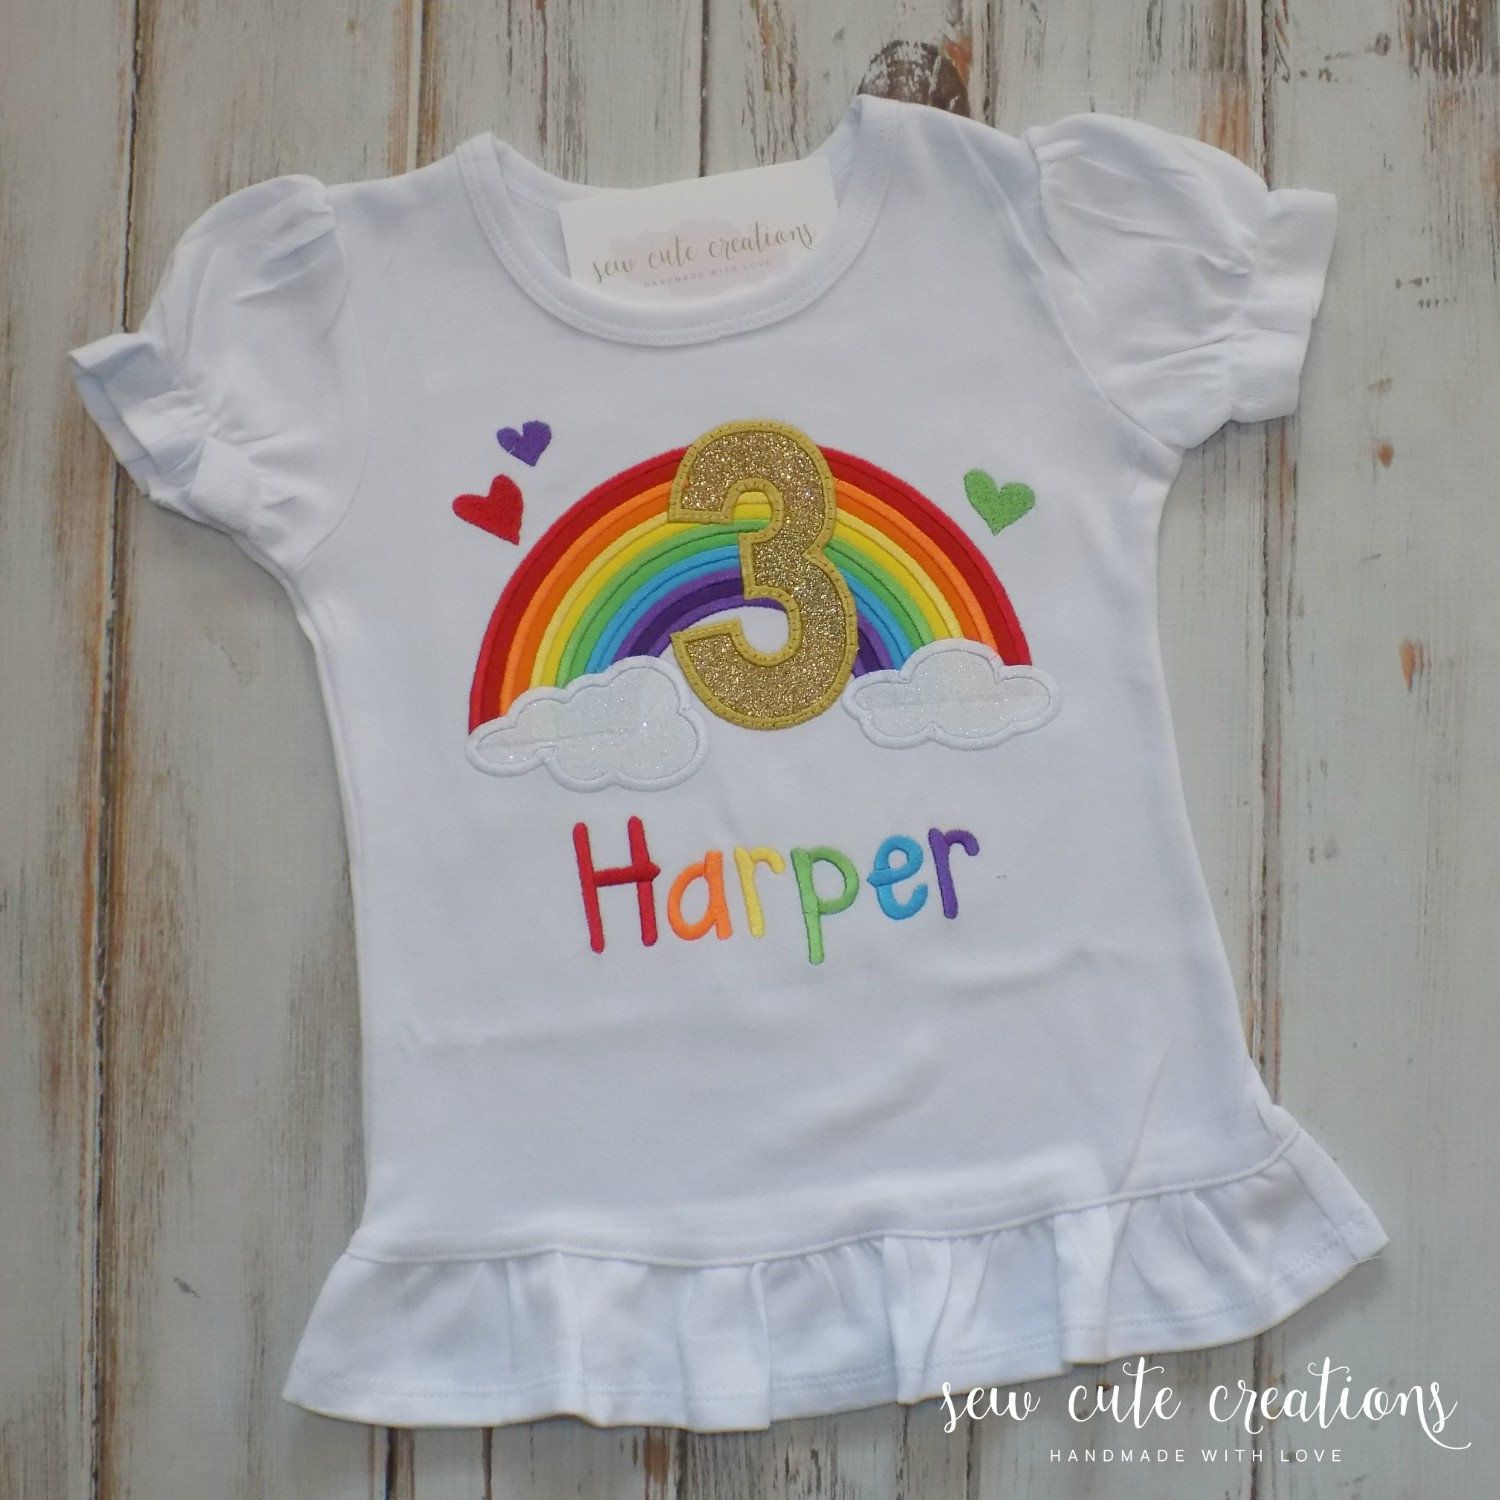 Rainbow Birthday Shirt Girl Outfit Party Ruffle Sihrt Sew Cute Creations